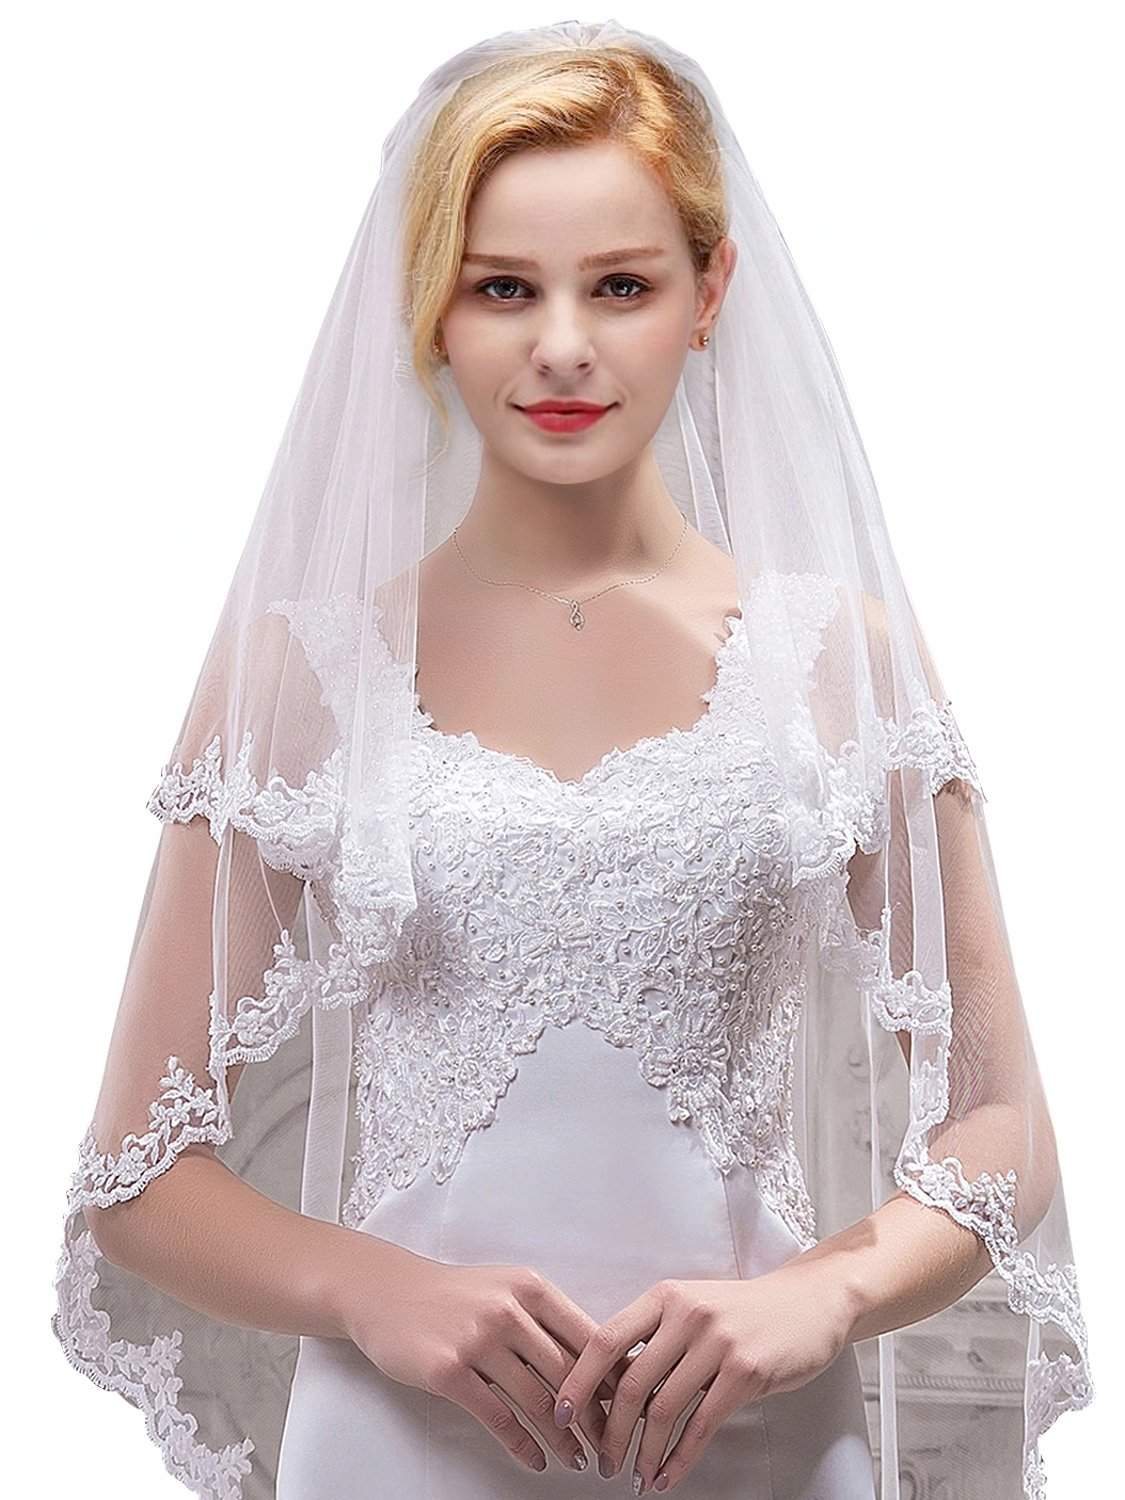 Women's Bridal Tulle Veils with Comb Lace Edge Wedding Veils for Bride,White by MisShow (Image #2)